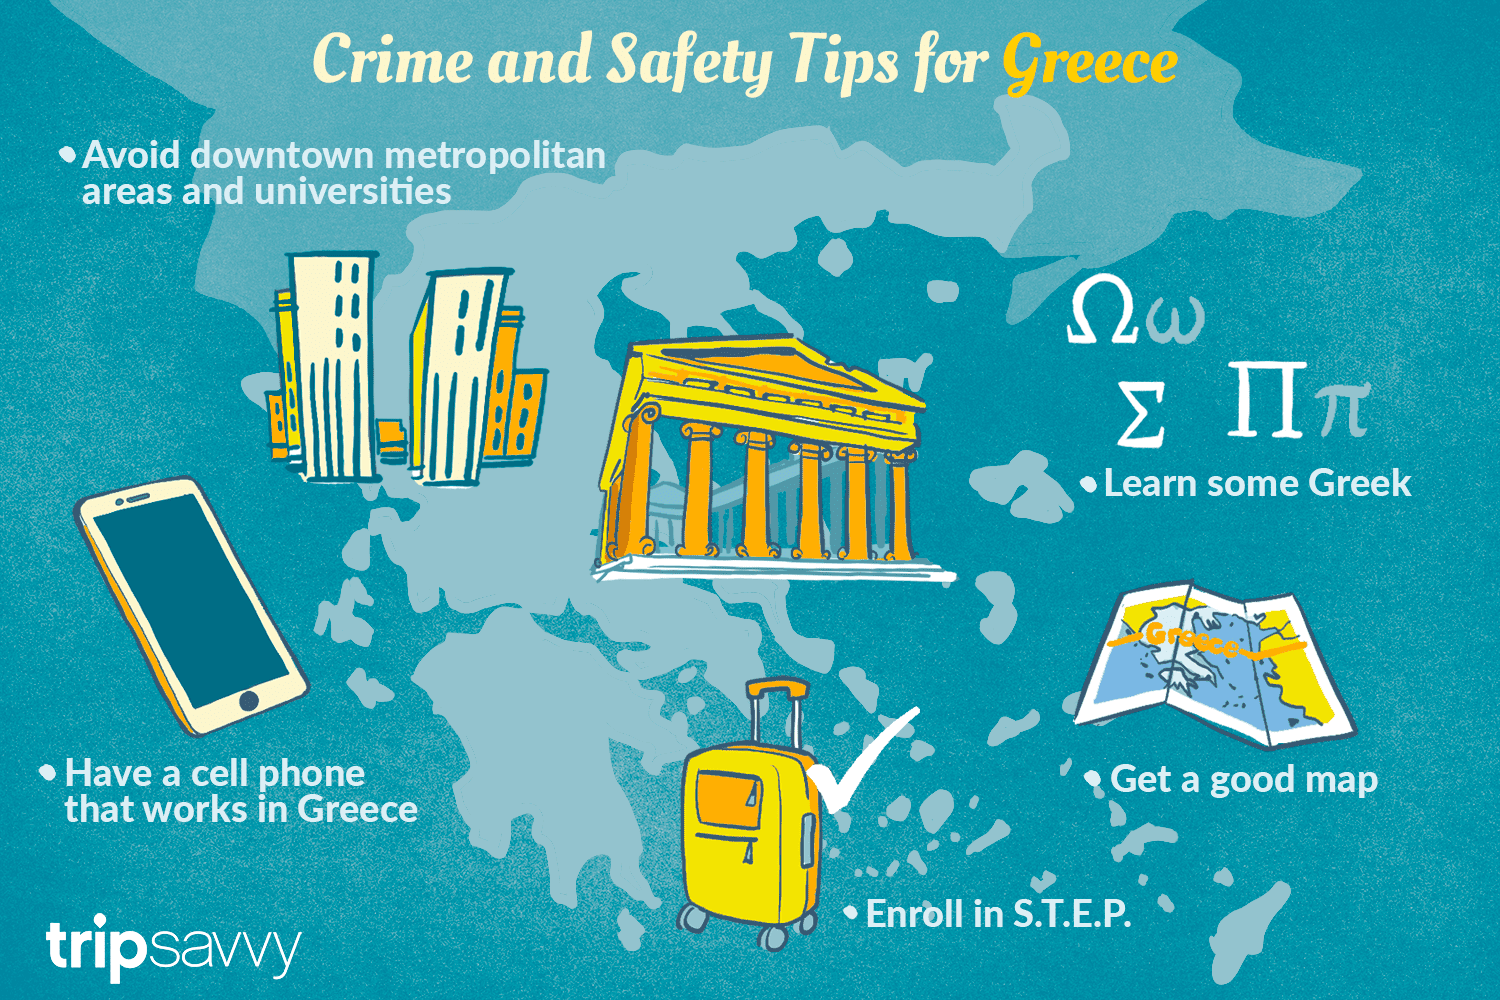 What you Need to Know to Stay Safe When in Greece